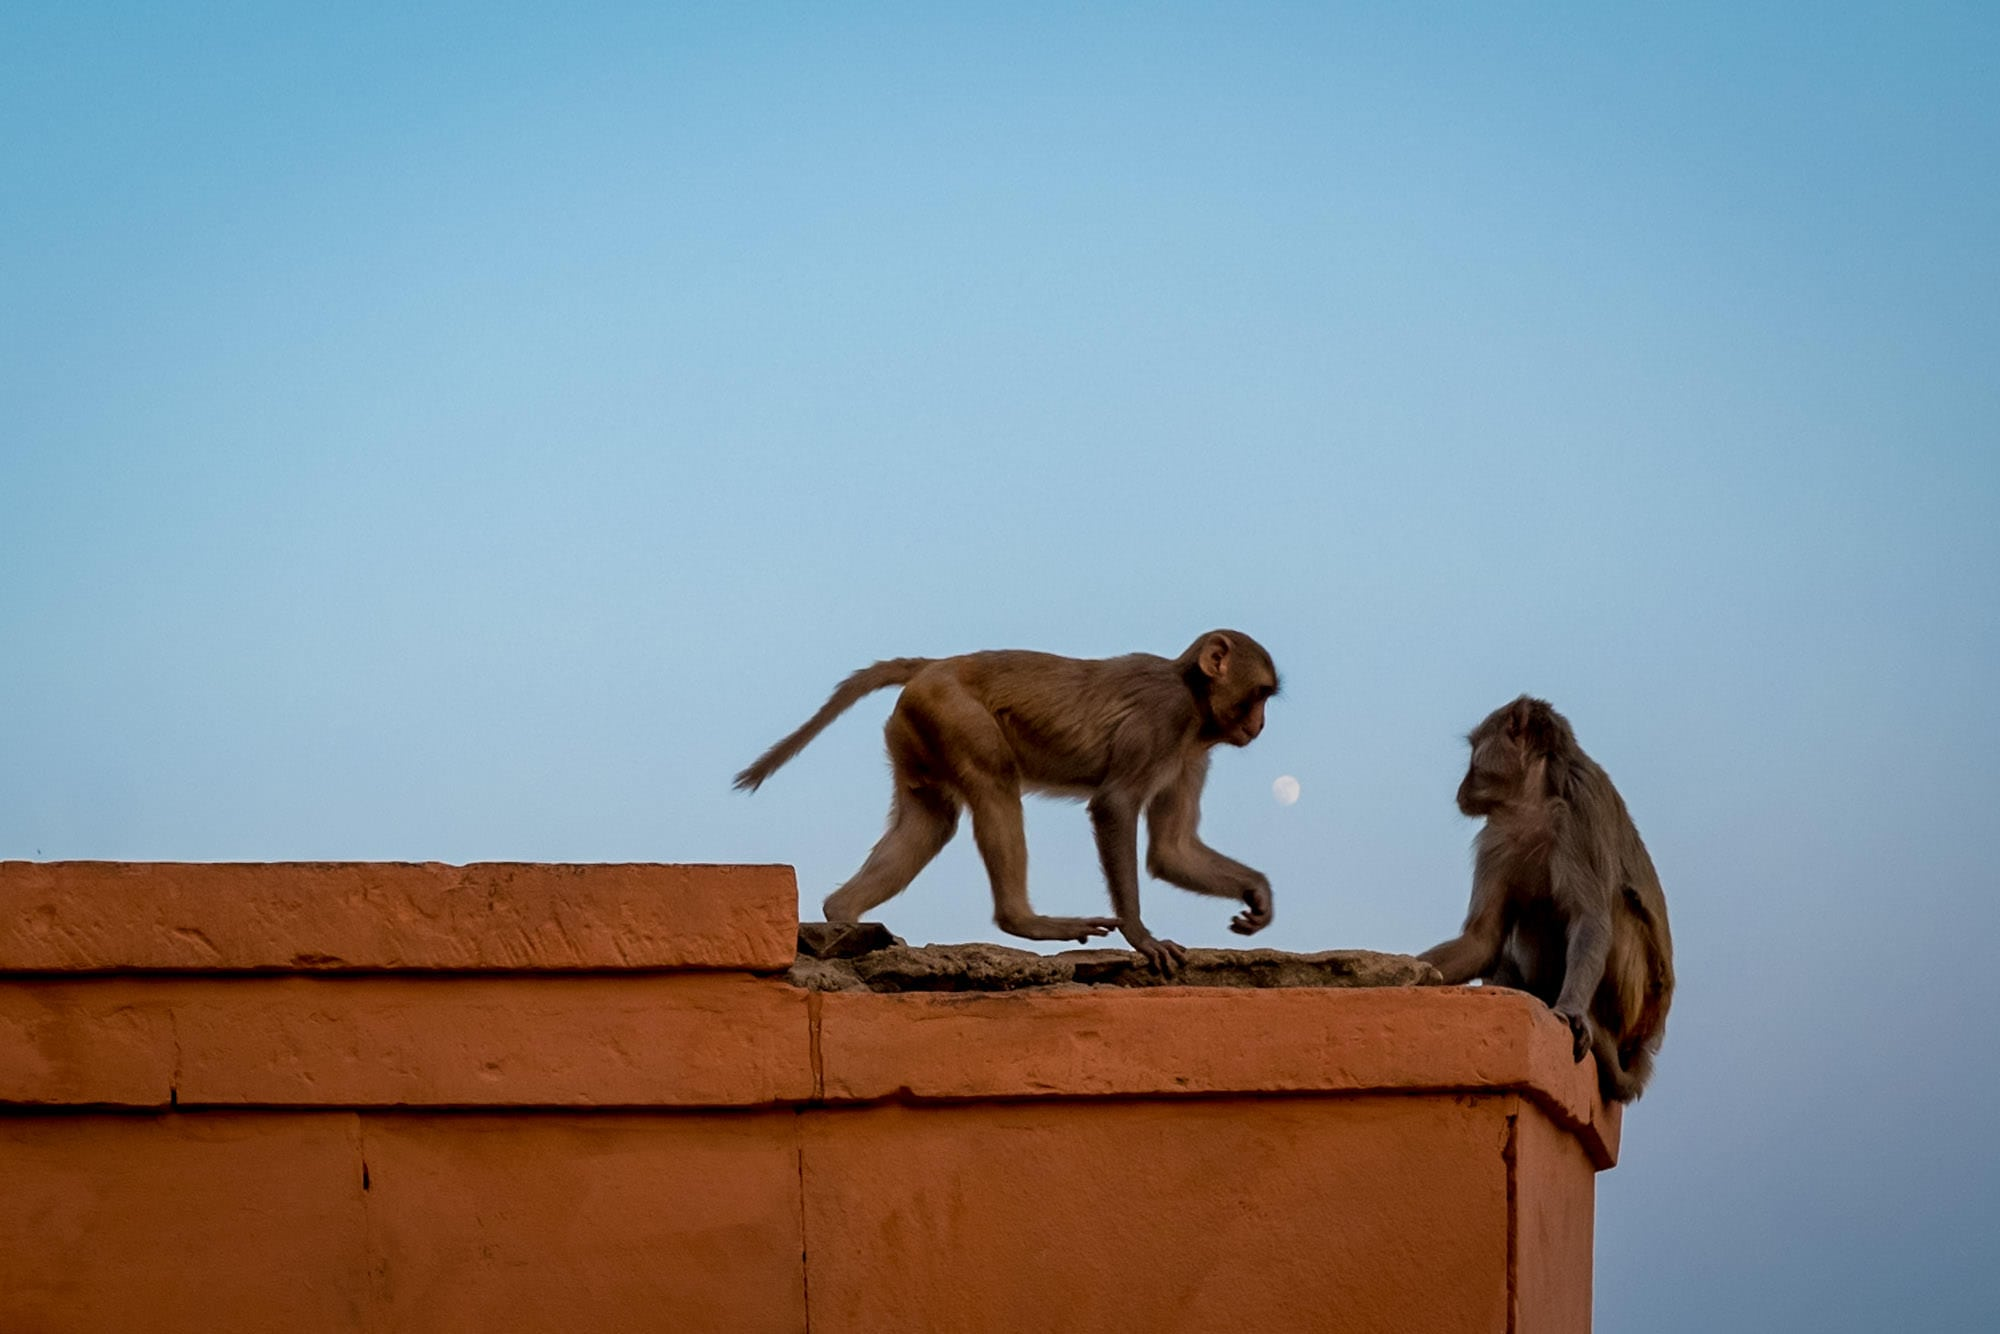 monkeys playing in Indian streets against blue sky and the moon